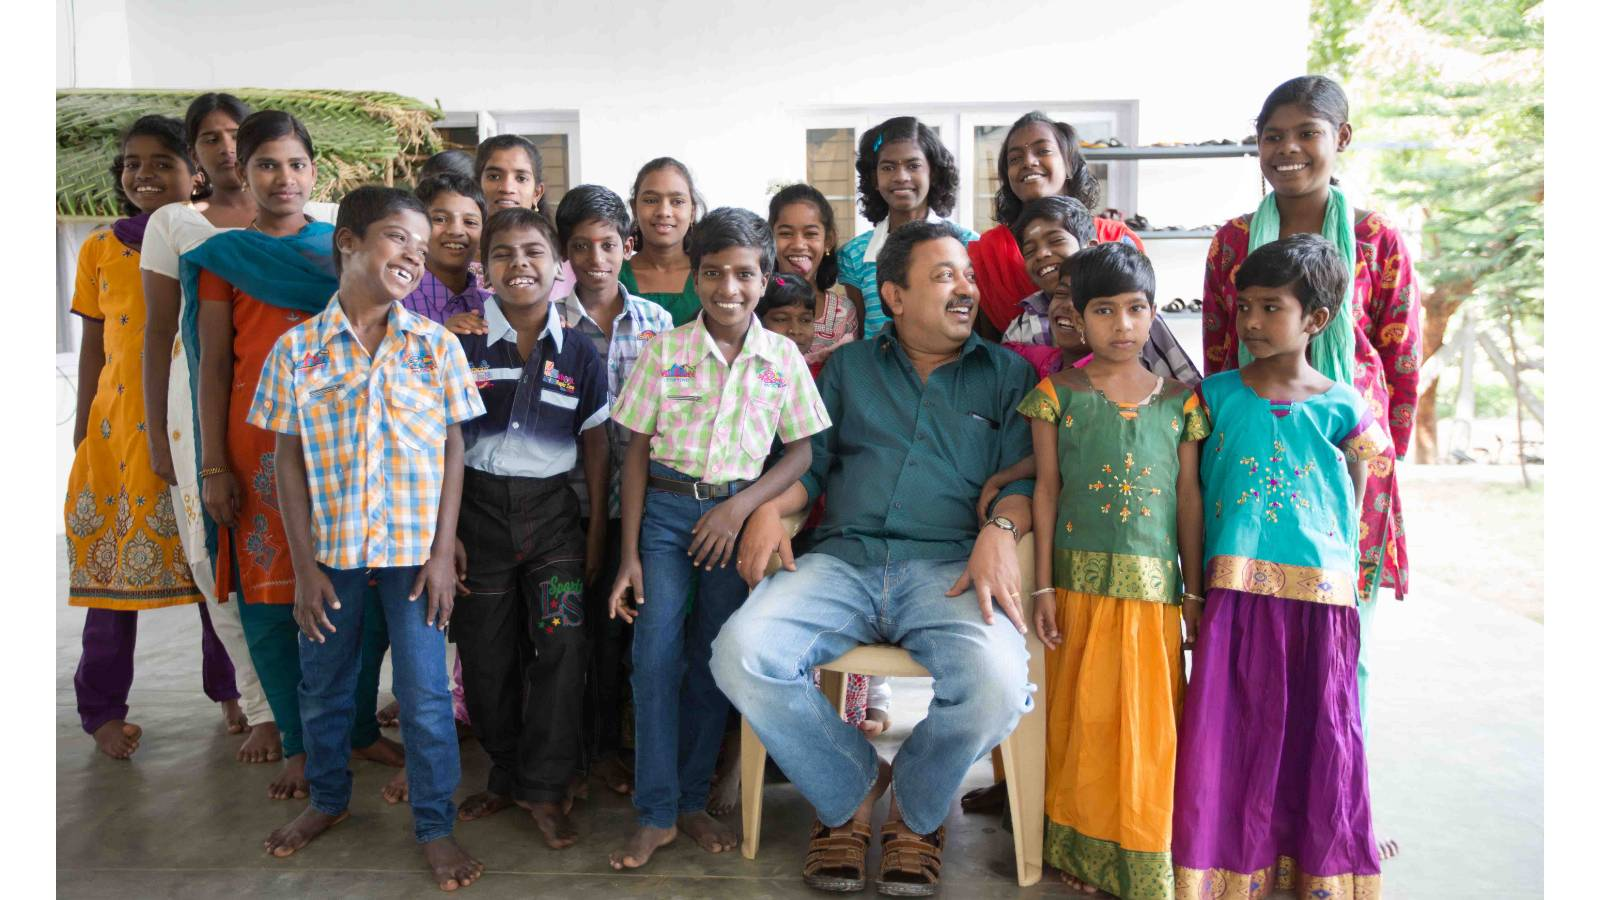 Tdhc's Children with Founder